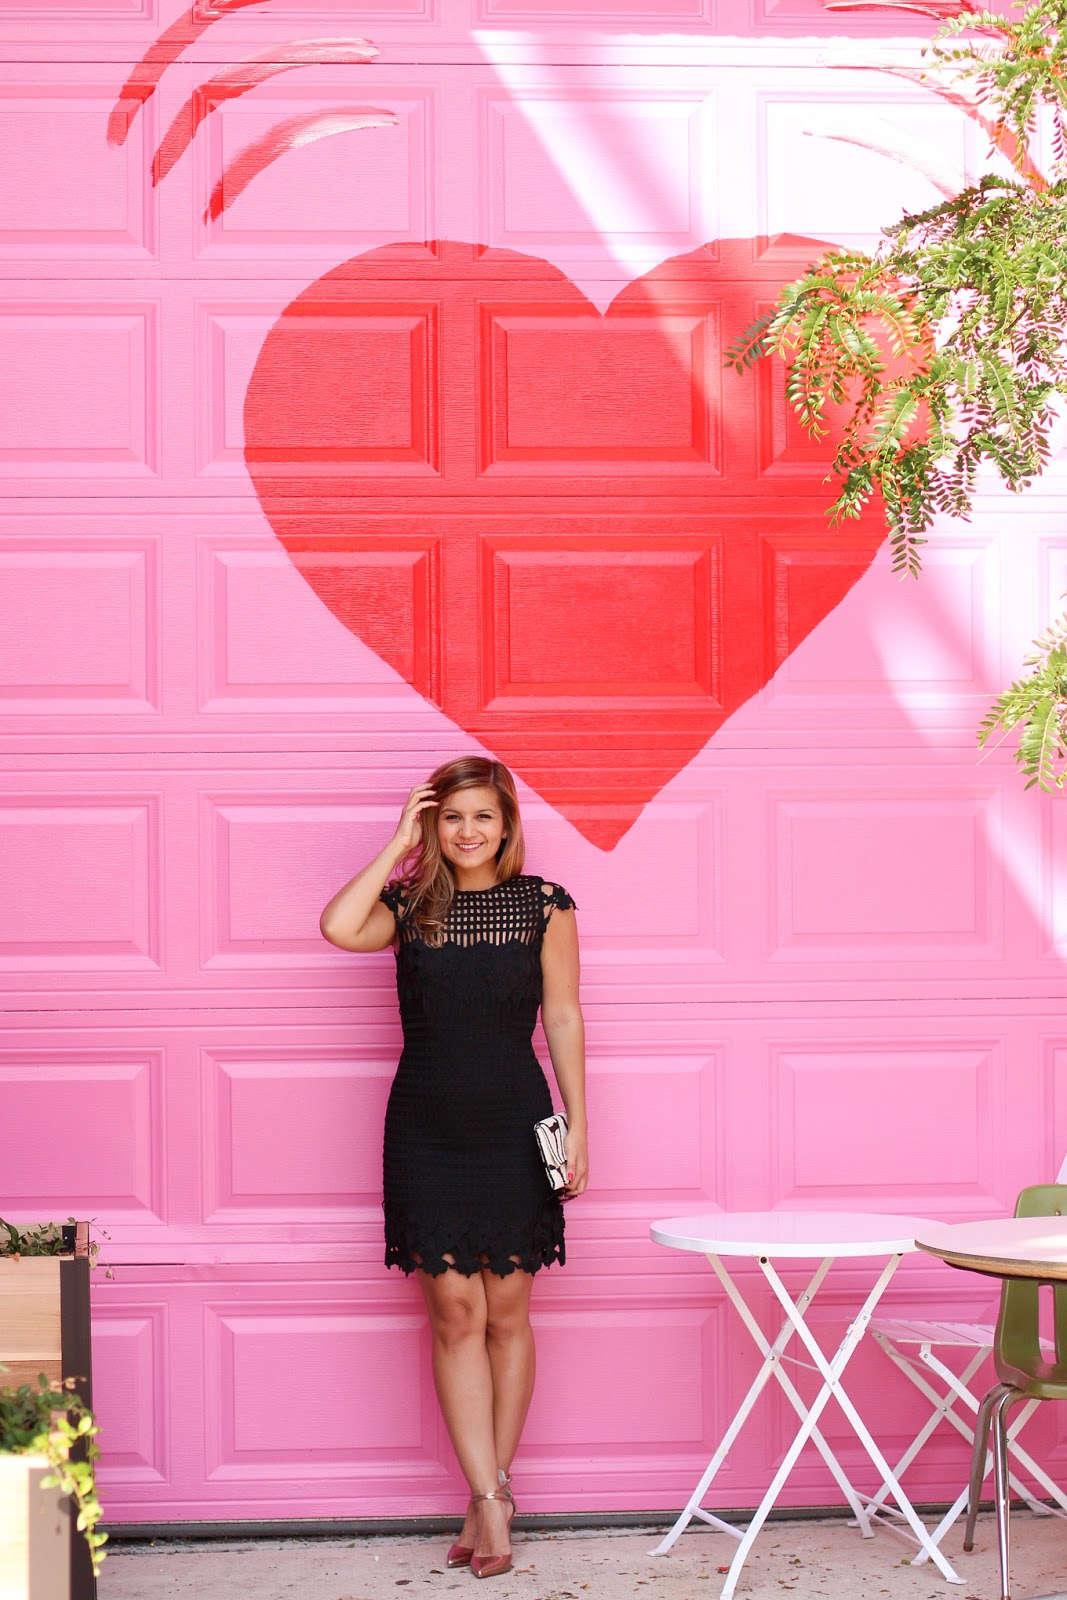 pink-wall-chicago-2.jpg